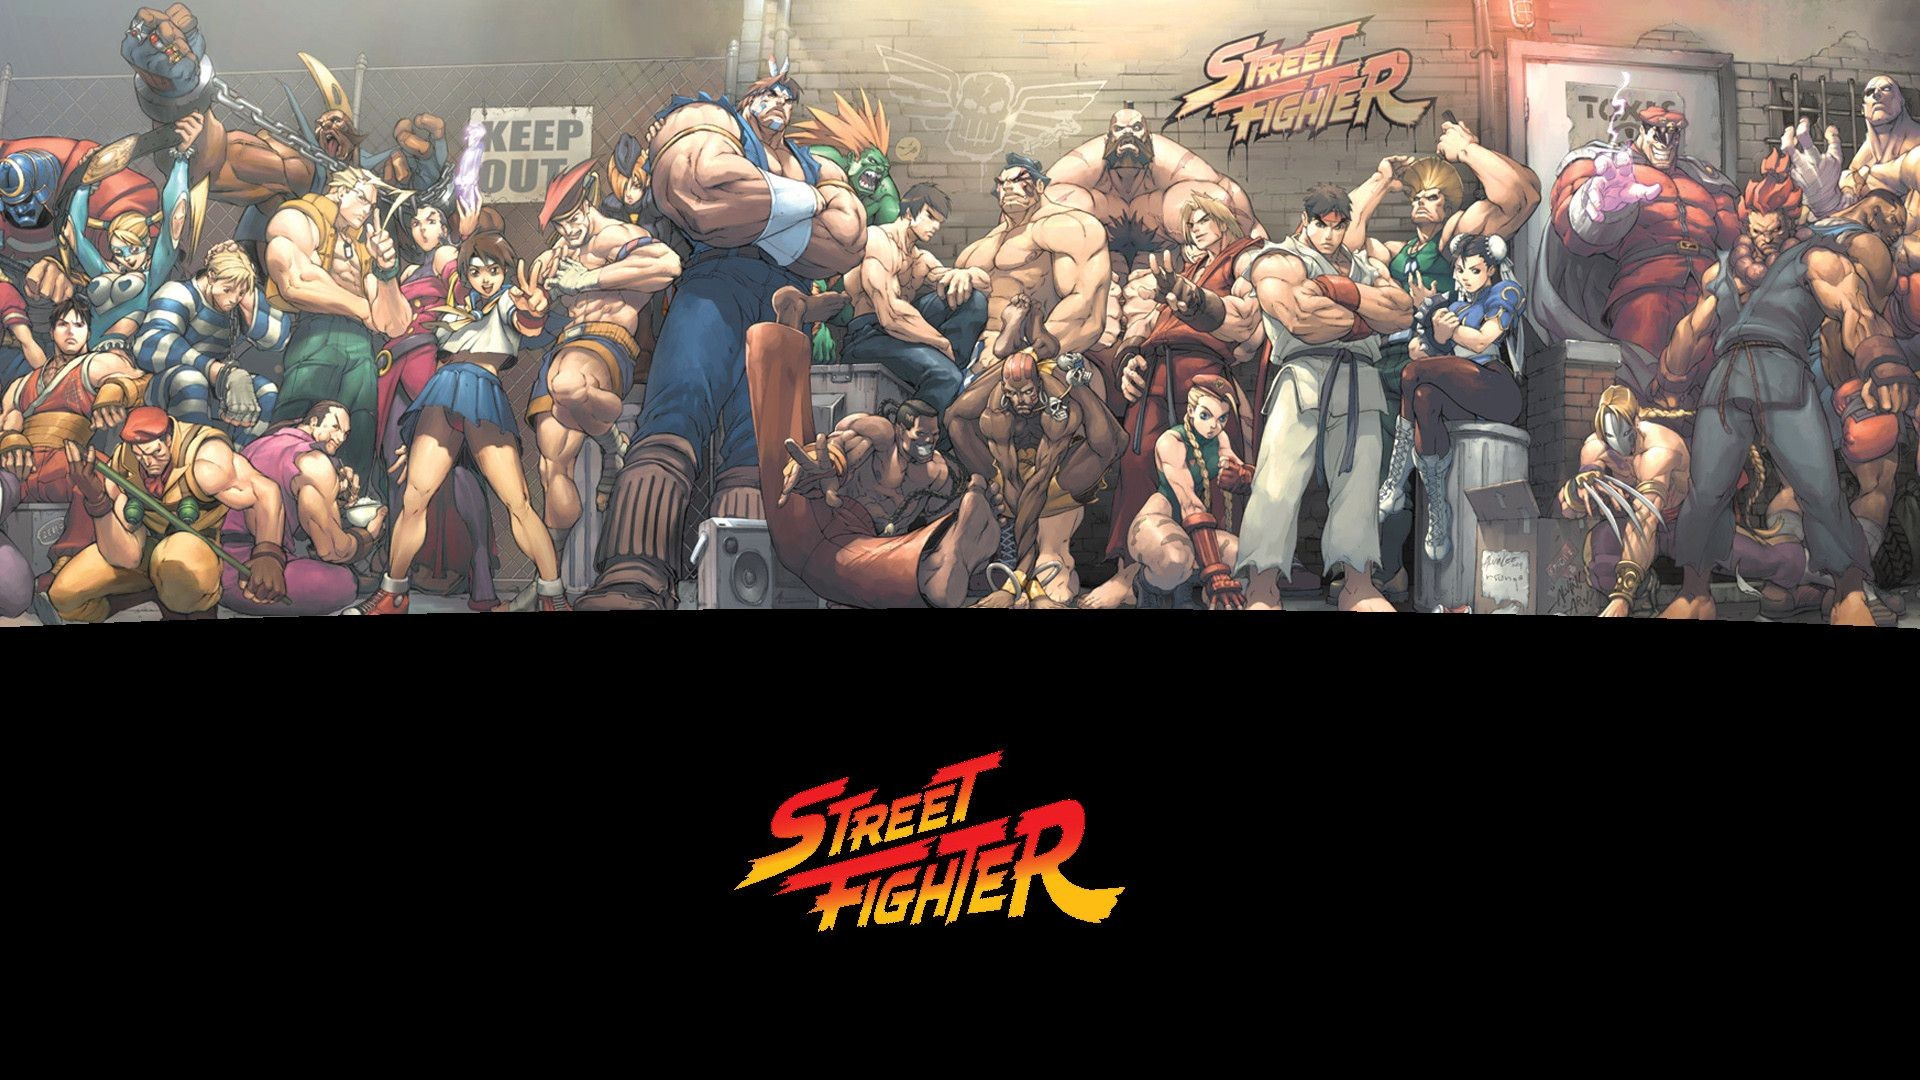 Street Fighter 5 Wallpaper Download Free Stunning Wallpapers For